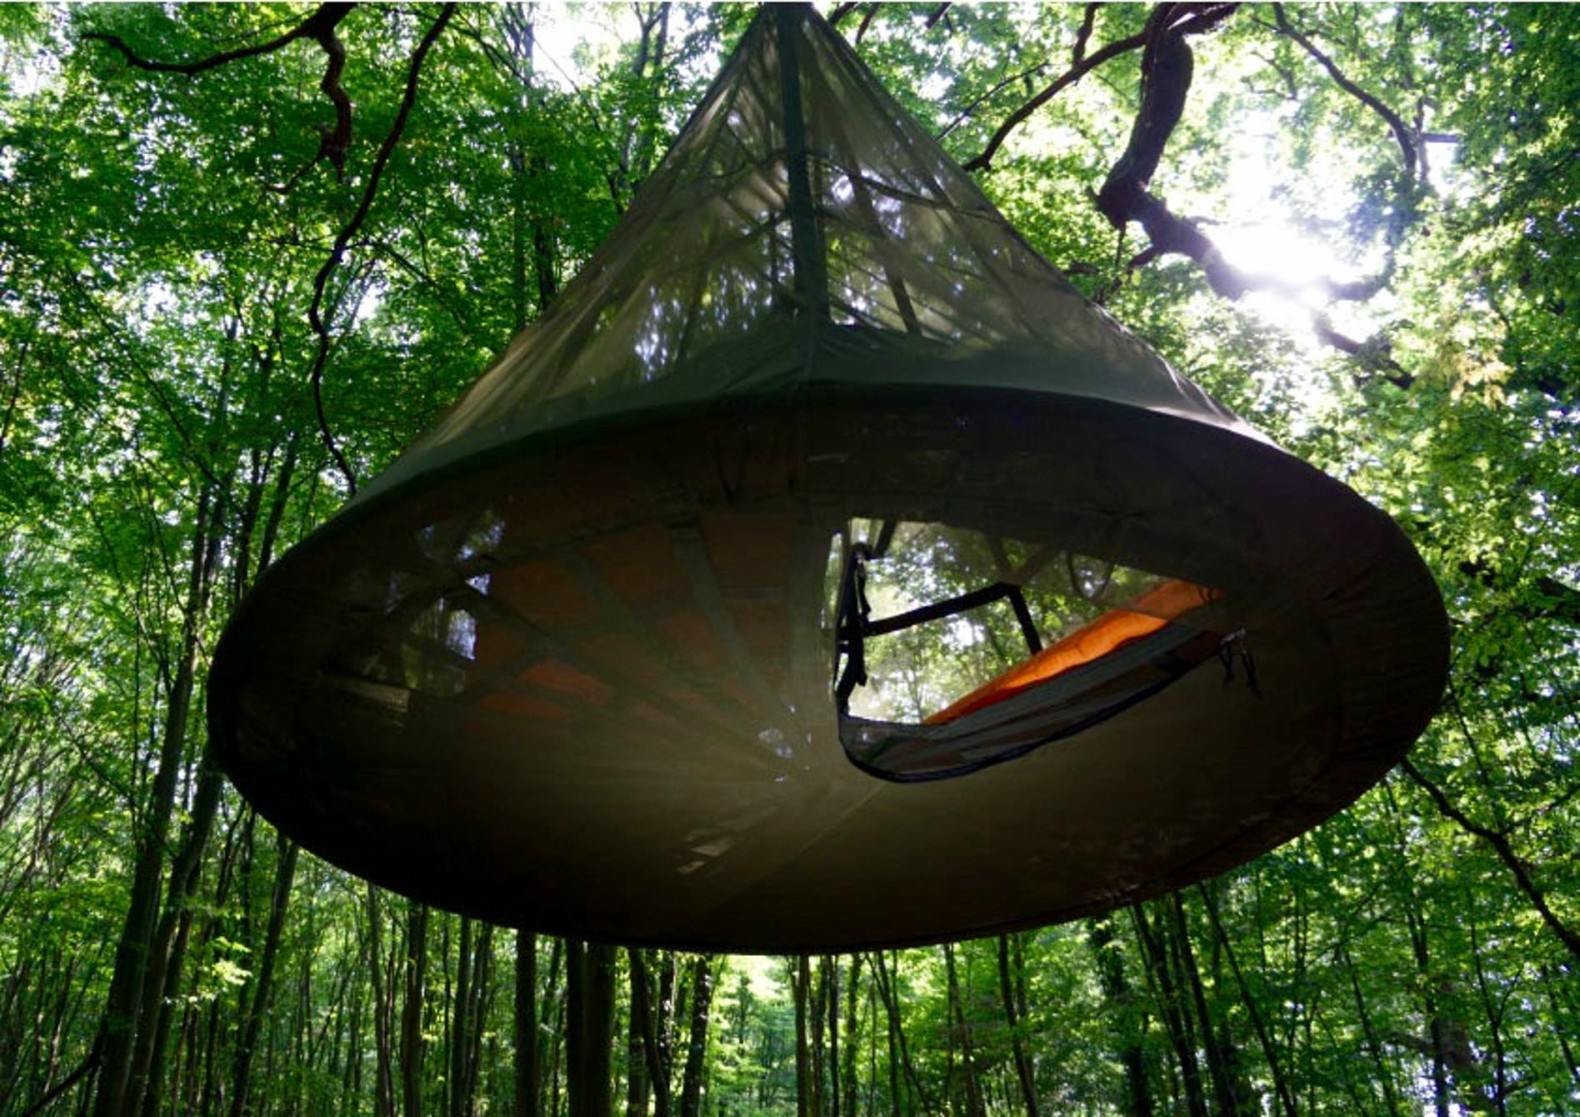 The Super Durable Sky Pod Tree Tent Can Support Up To 550